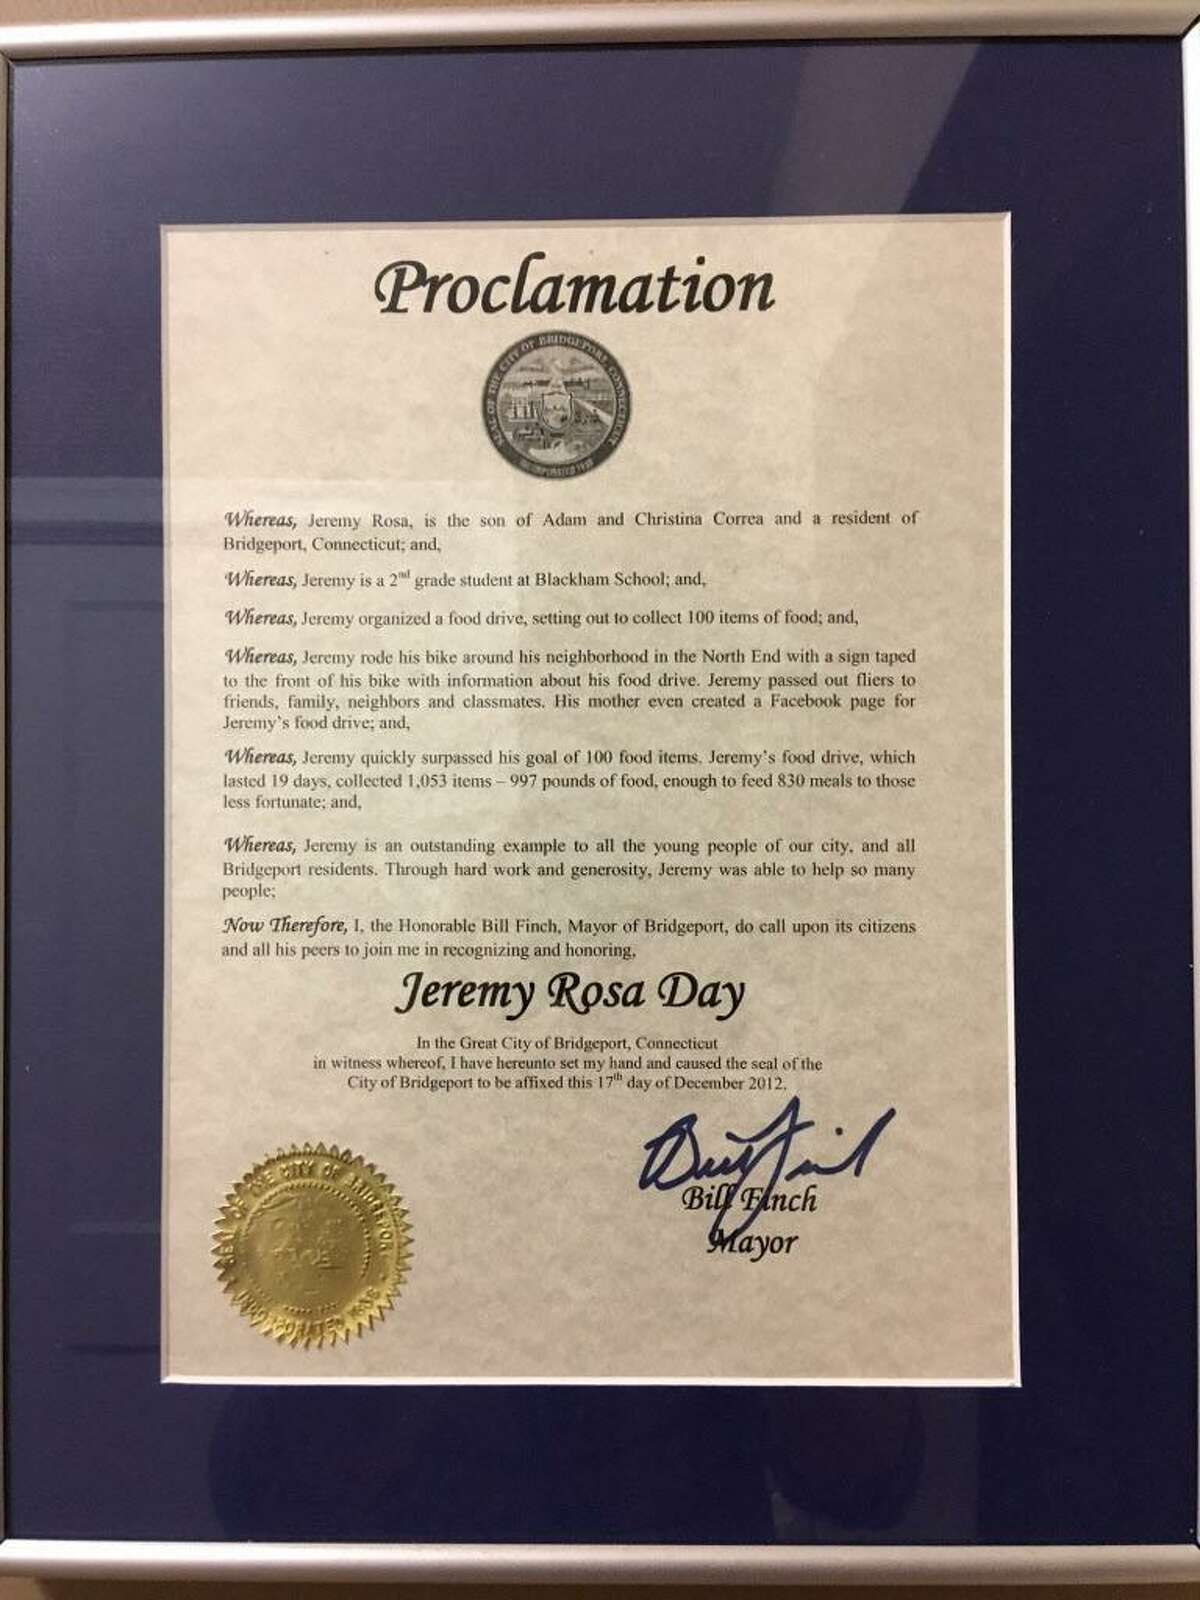 The proclamation Jeremy Rosa got at age 7 when he ran his first food drive